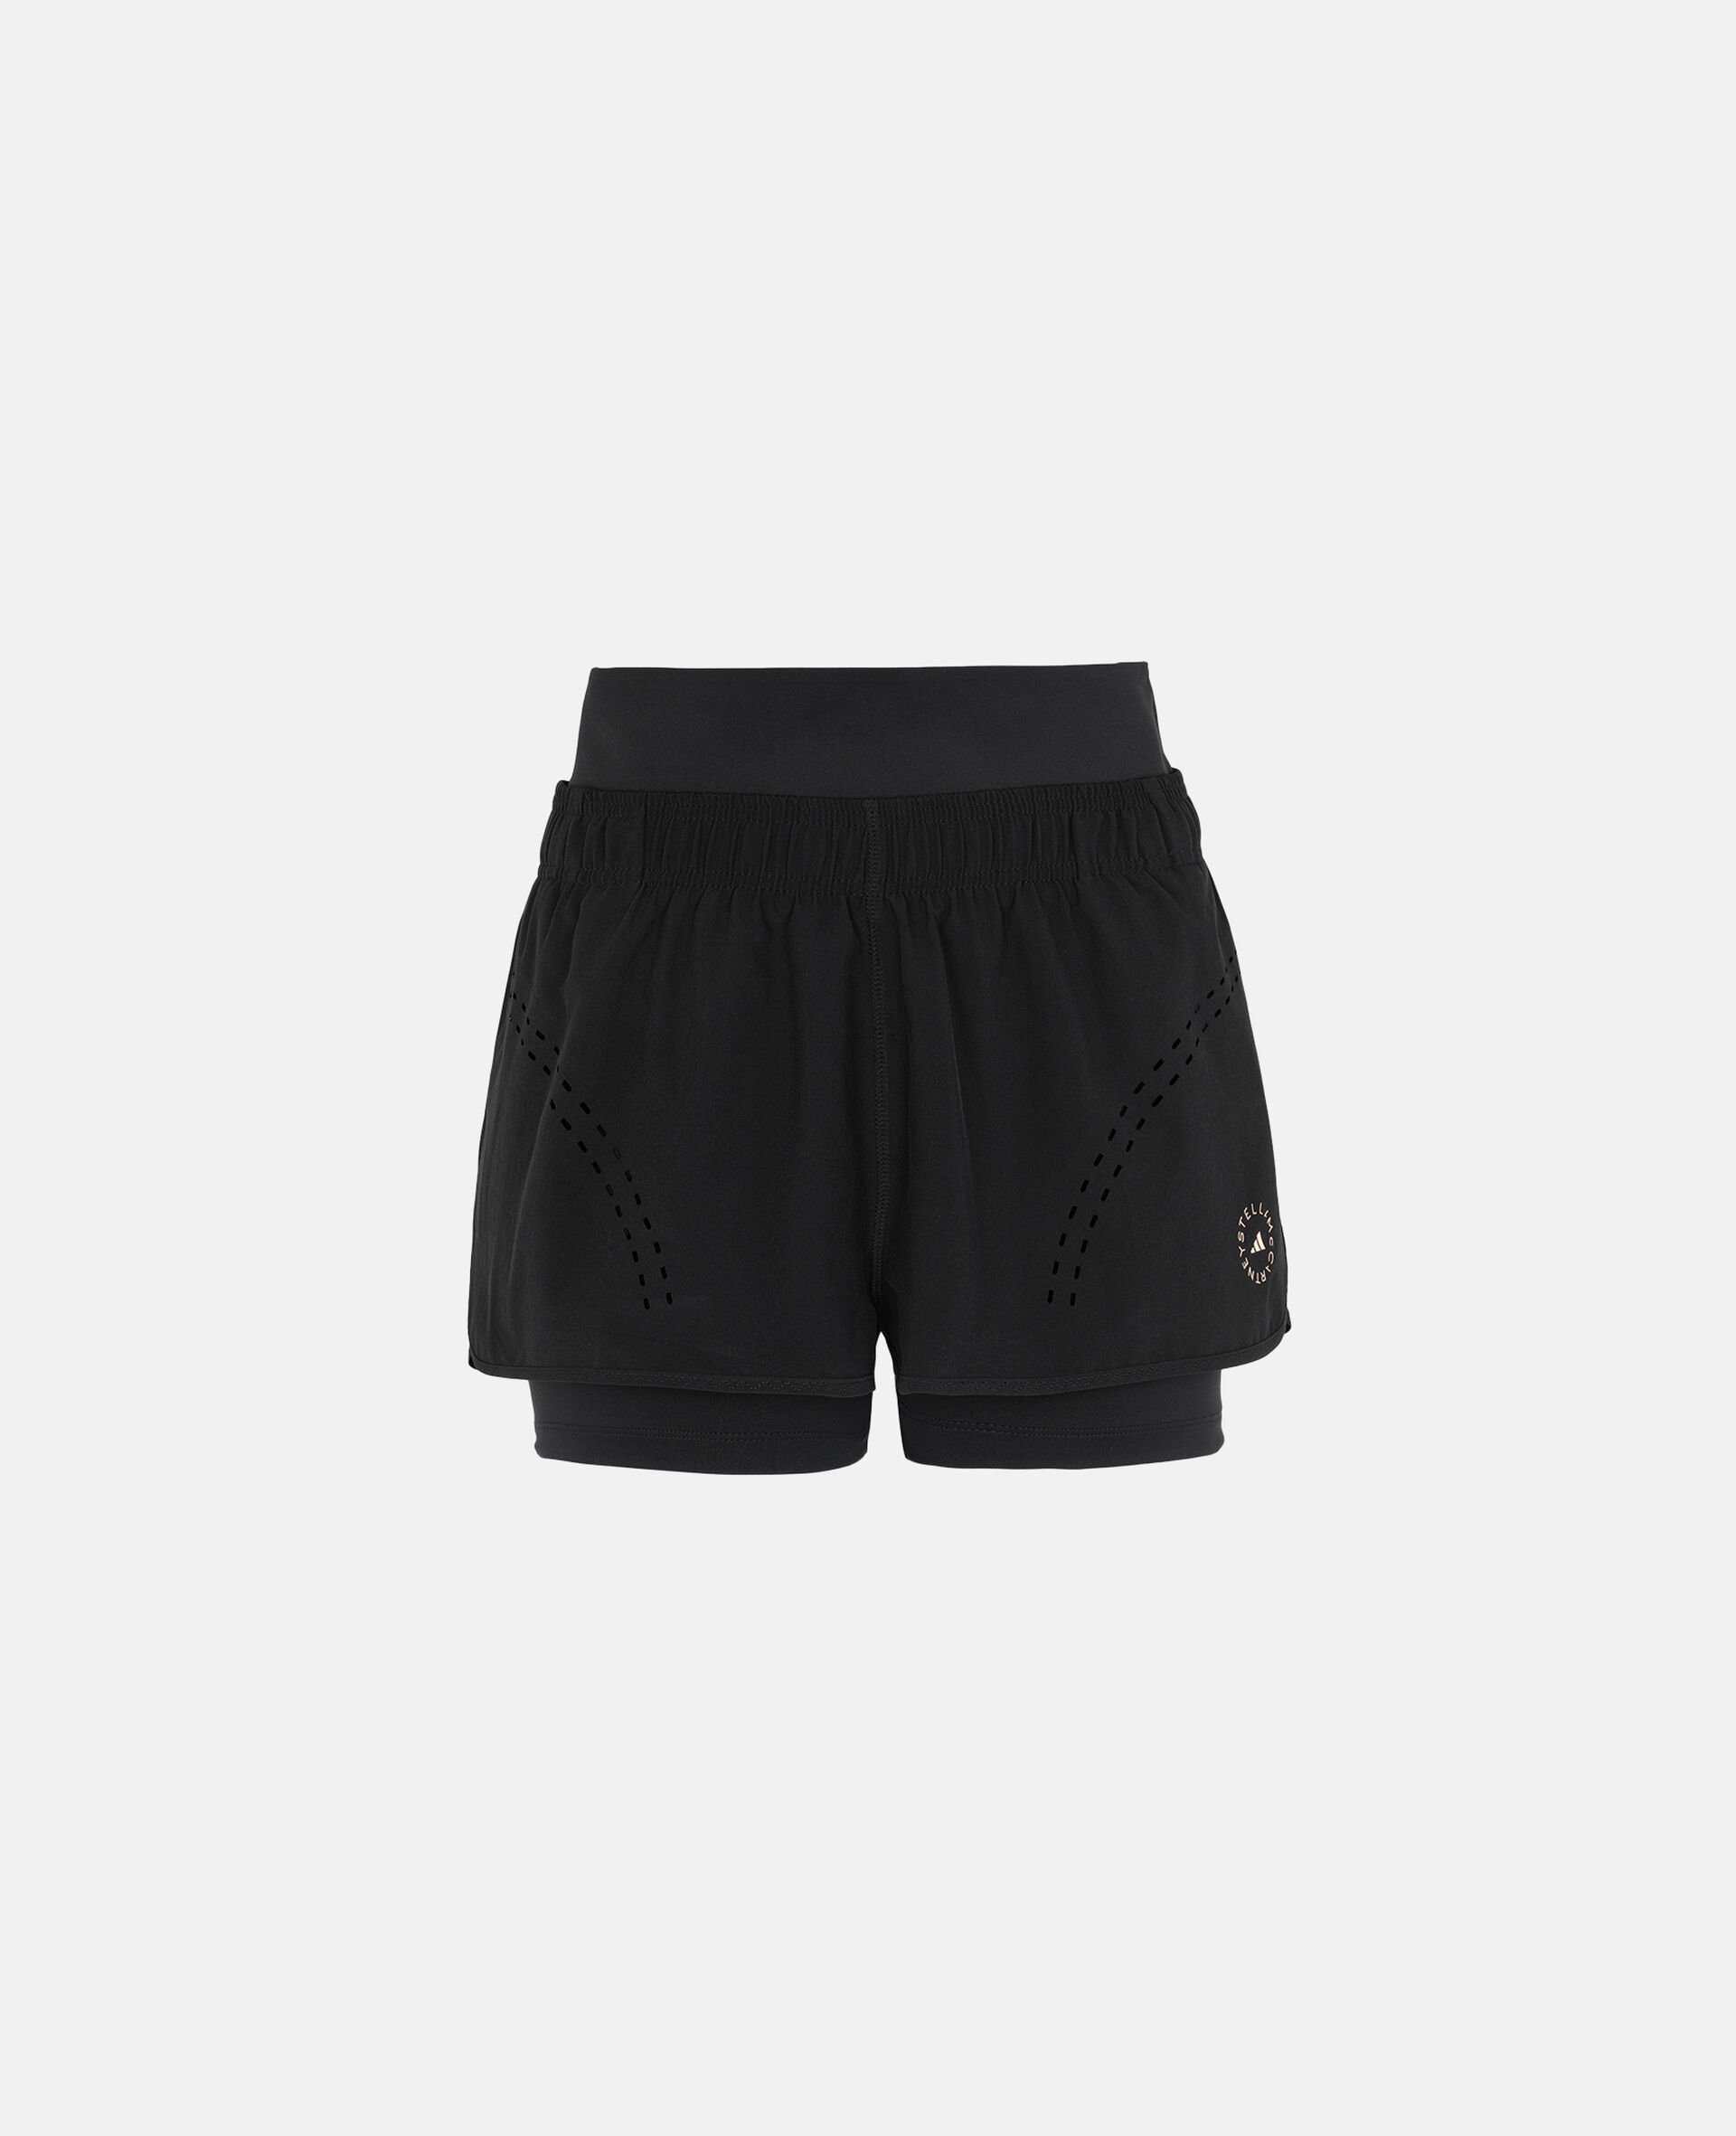 Black TruePurpose Training Short-Black-large image number 5